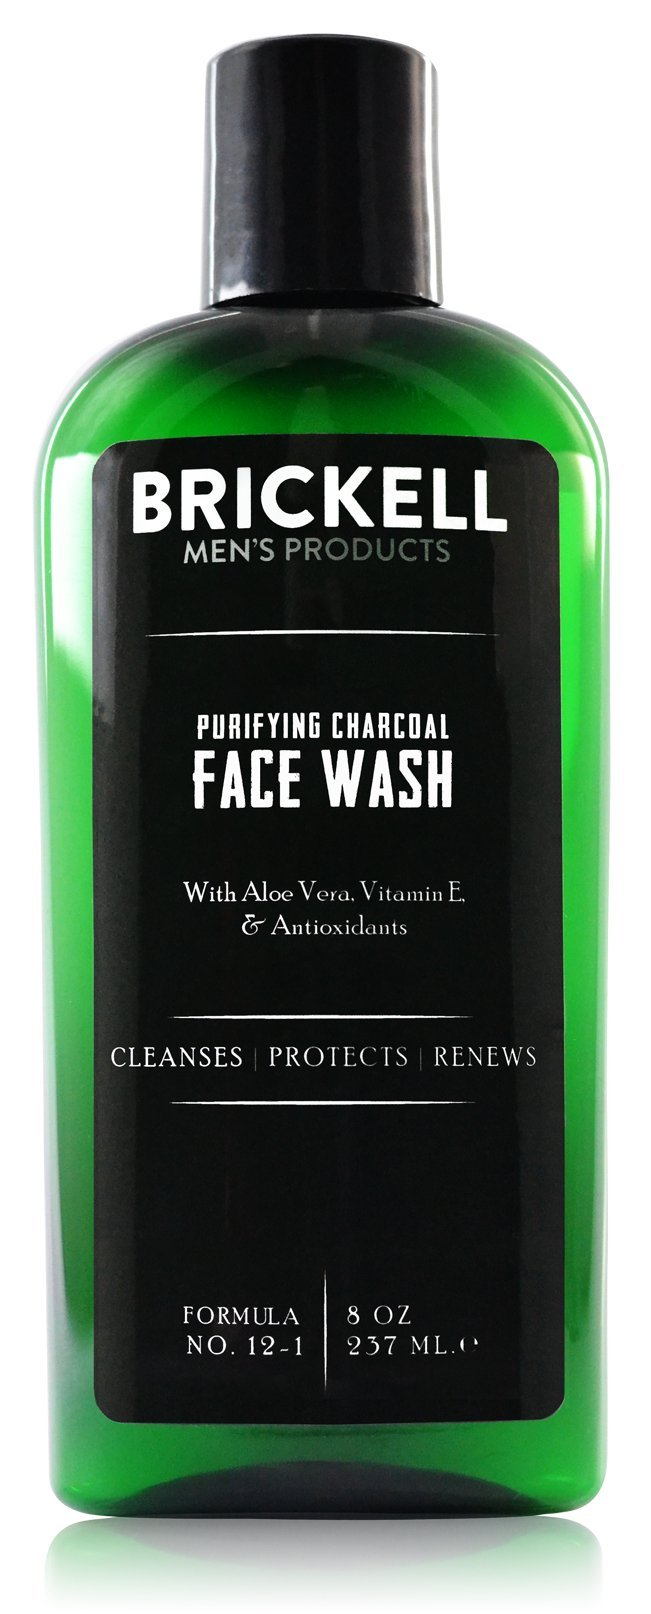 Brickell Men's Purifying Charcoal Face Wash for Men – Natural & Organic Facial Cleanser – 8 oz